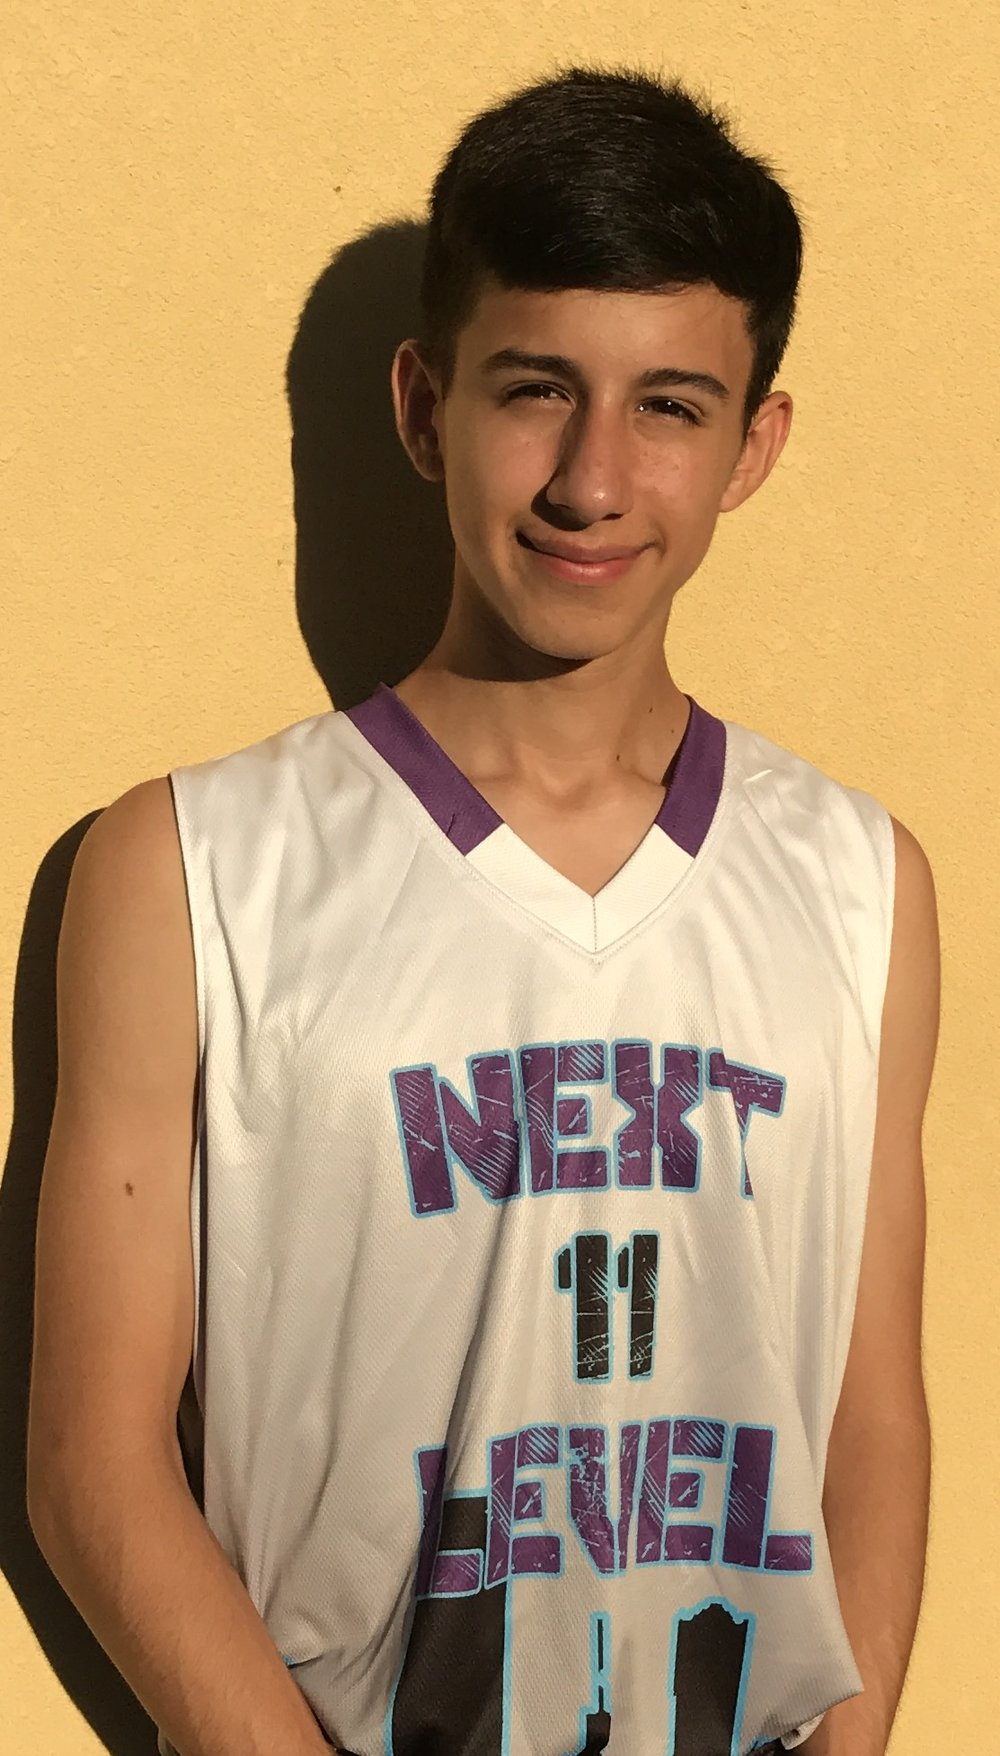 Matthew Riojas #11    School: Ridge Point High School     Grade: 10th     Height: 5'11    Weight: 120    Position: Forward    Top 5 Colleges: UT, Rice, FSU, Florida, Baylor